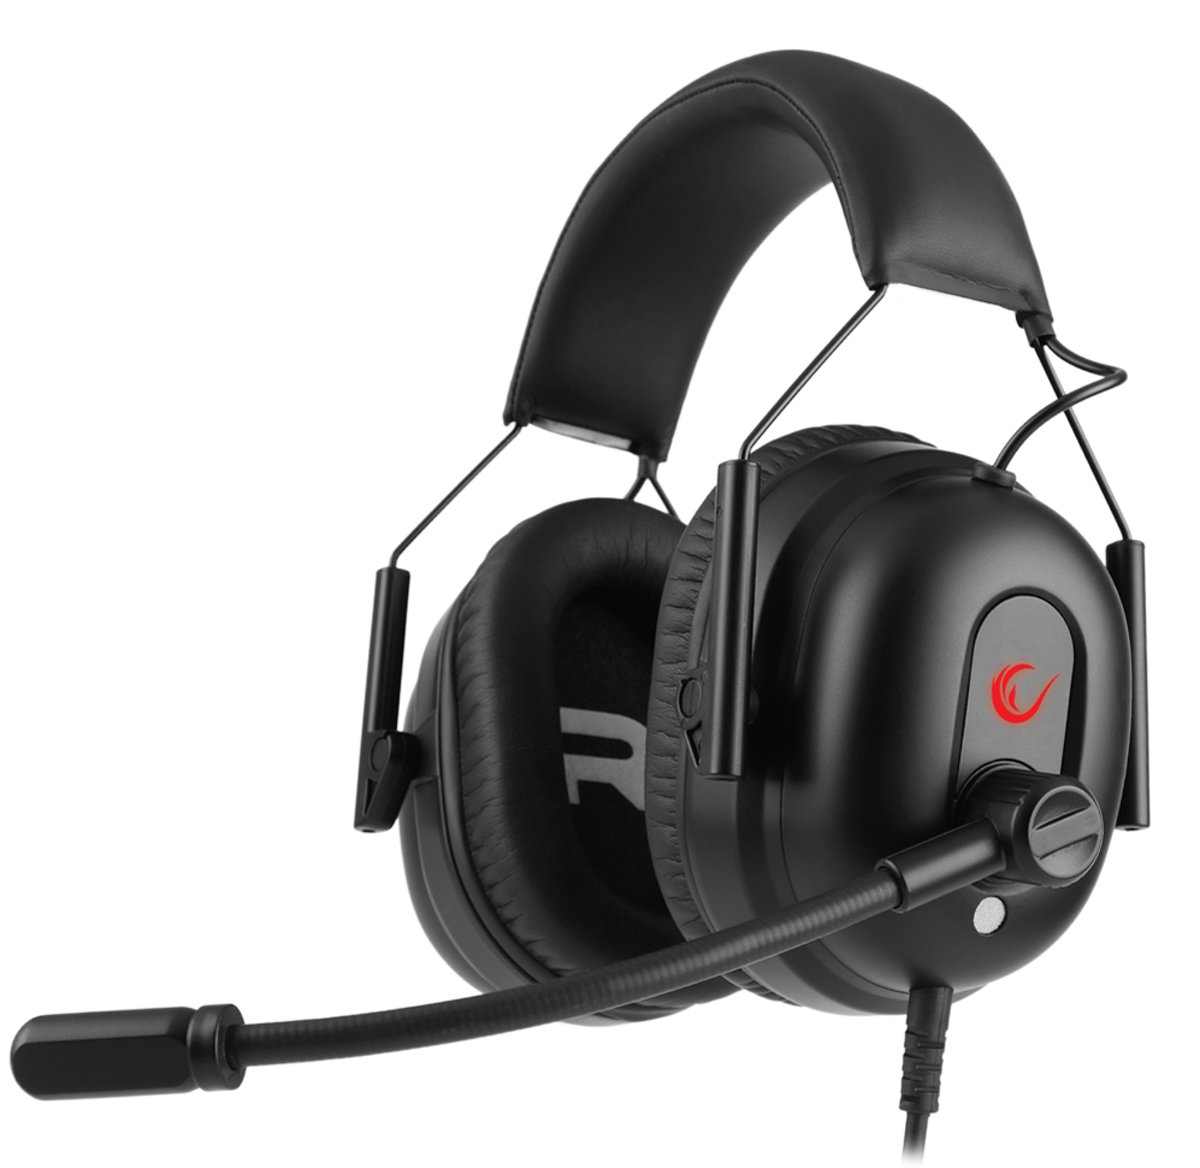 R41 REACTOR - Real 7.1 Surround sound Gaming Headset - PC - PS4